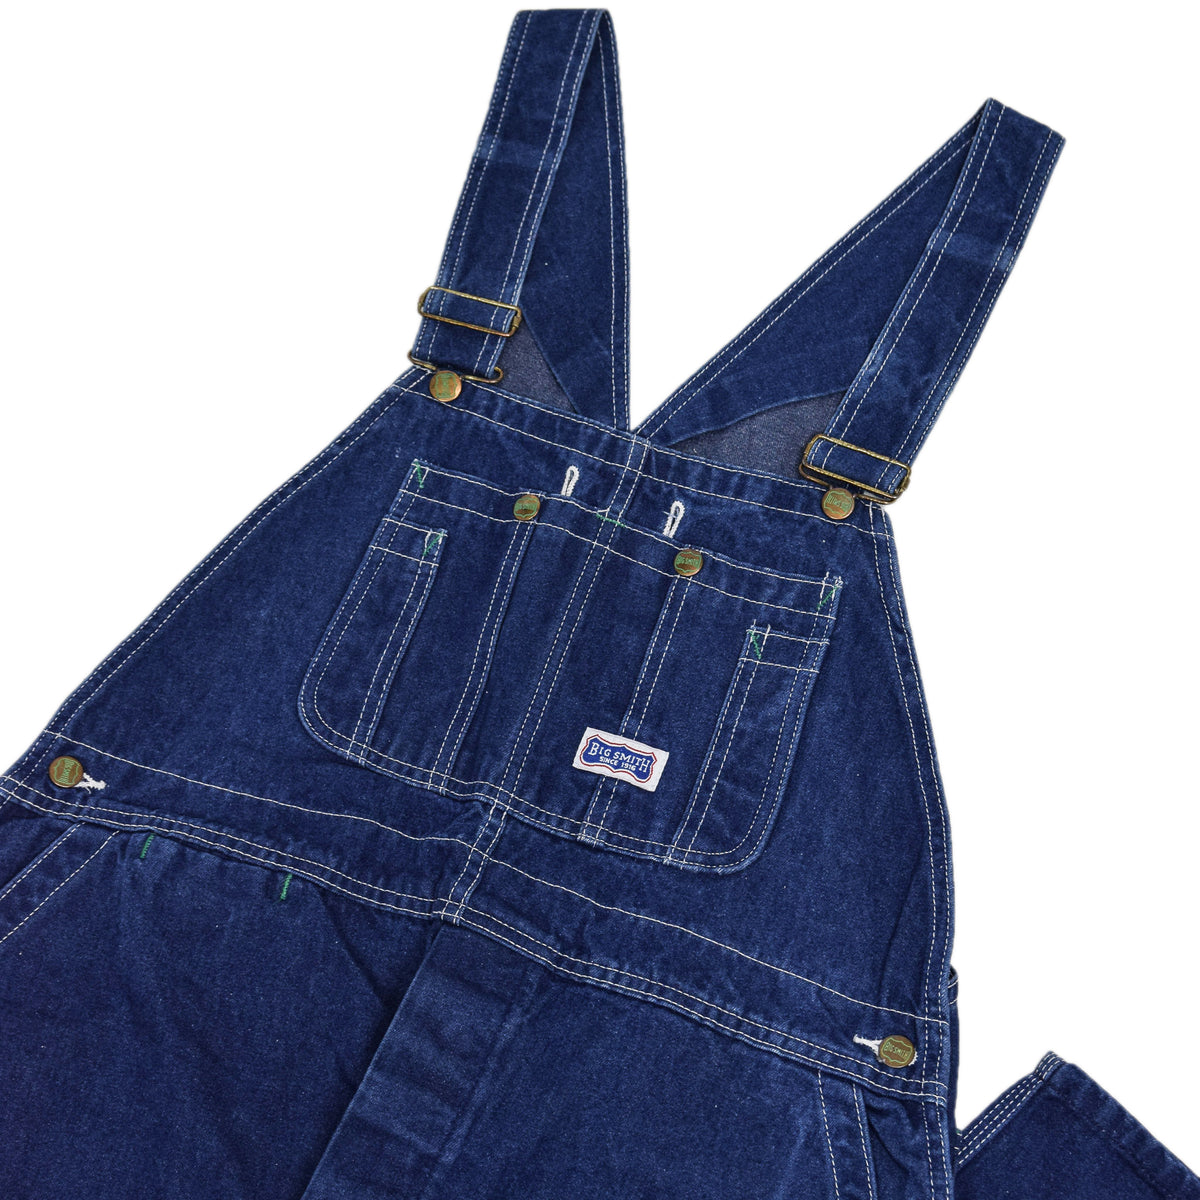 Vintage Big Smith Denim Work Dungarees Blue Bib Overalls Trousers M CHEST